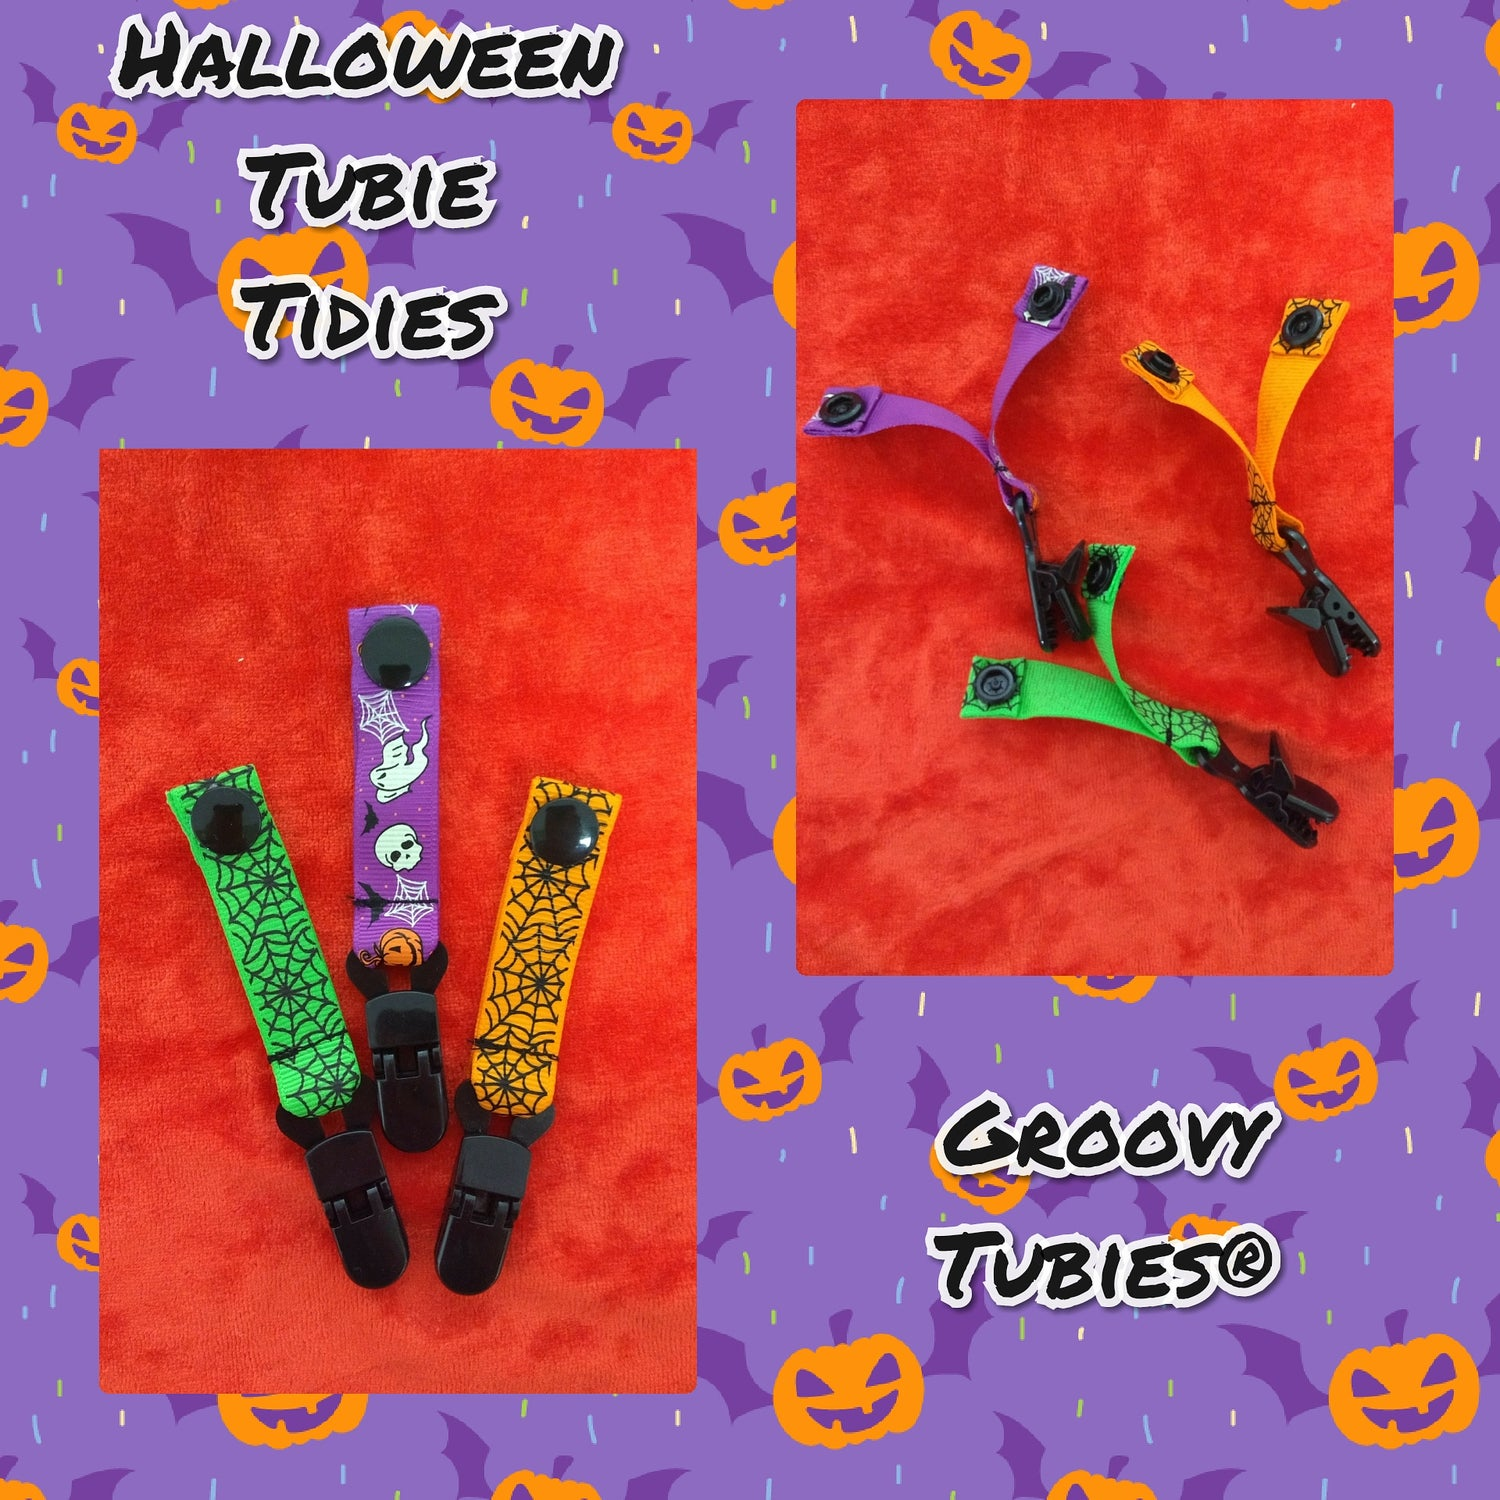 Image of Halloween Tubie Tidies